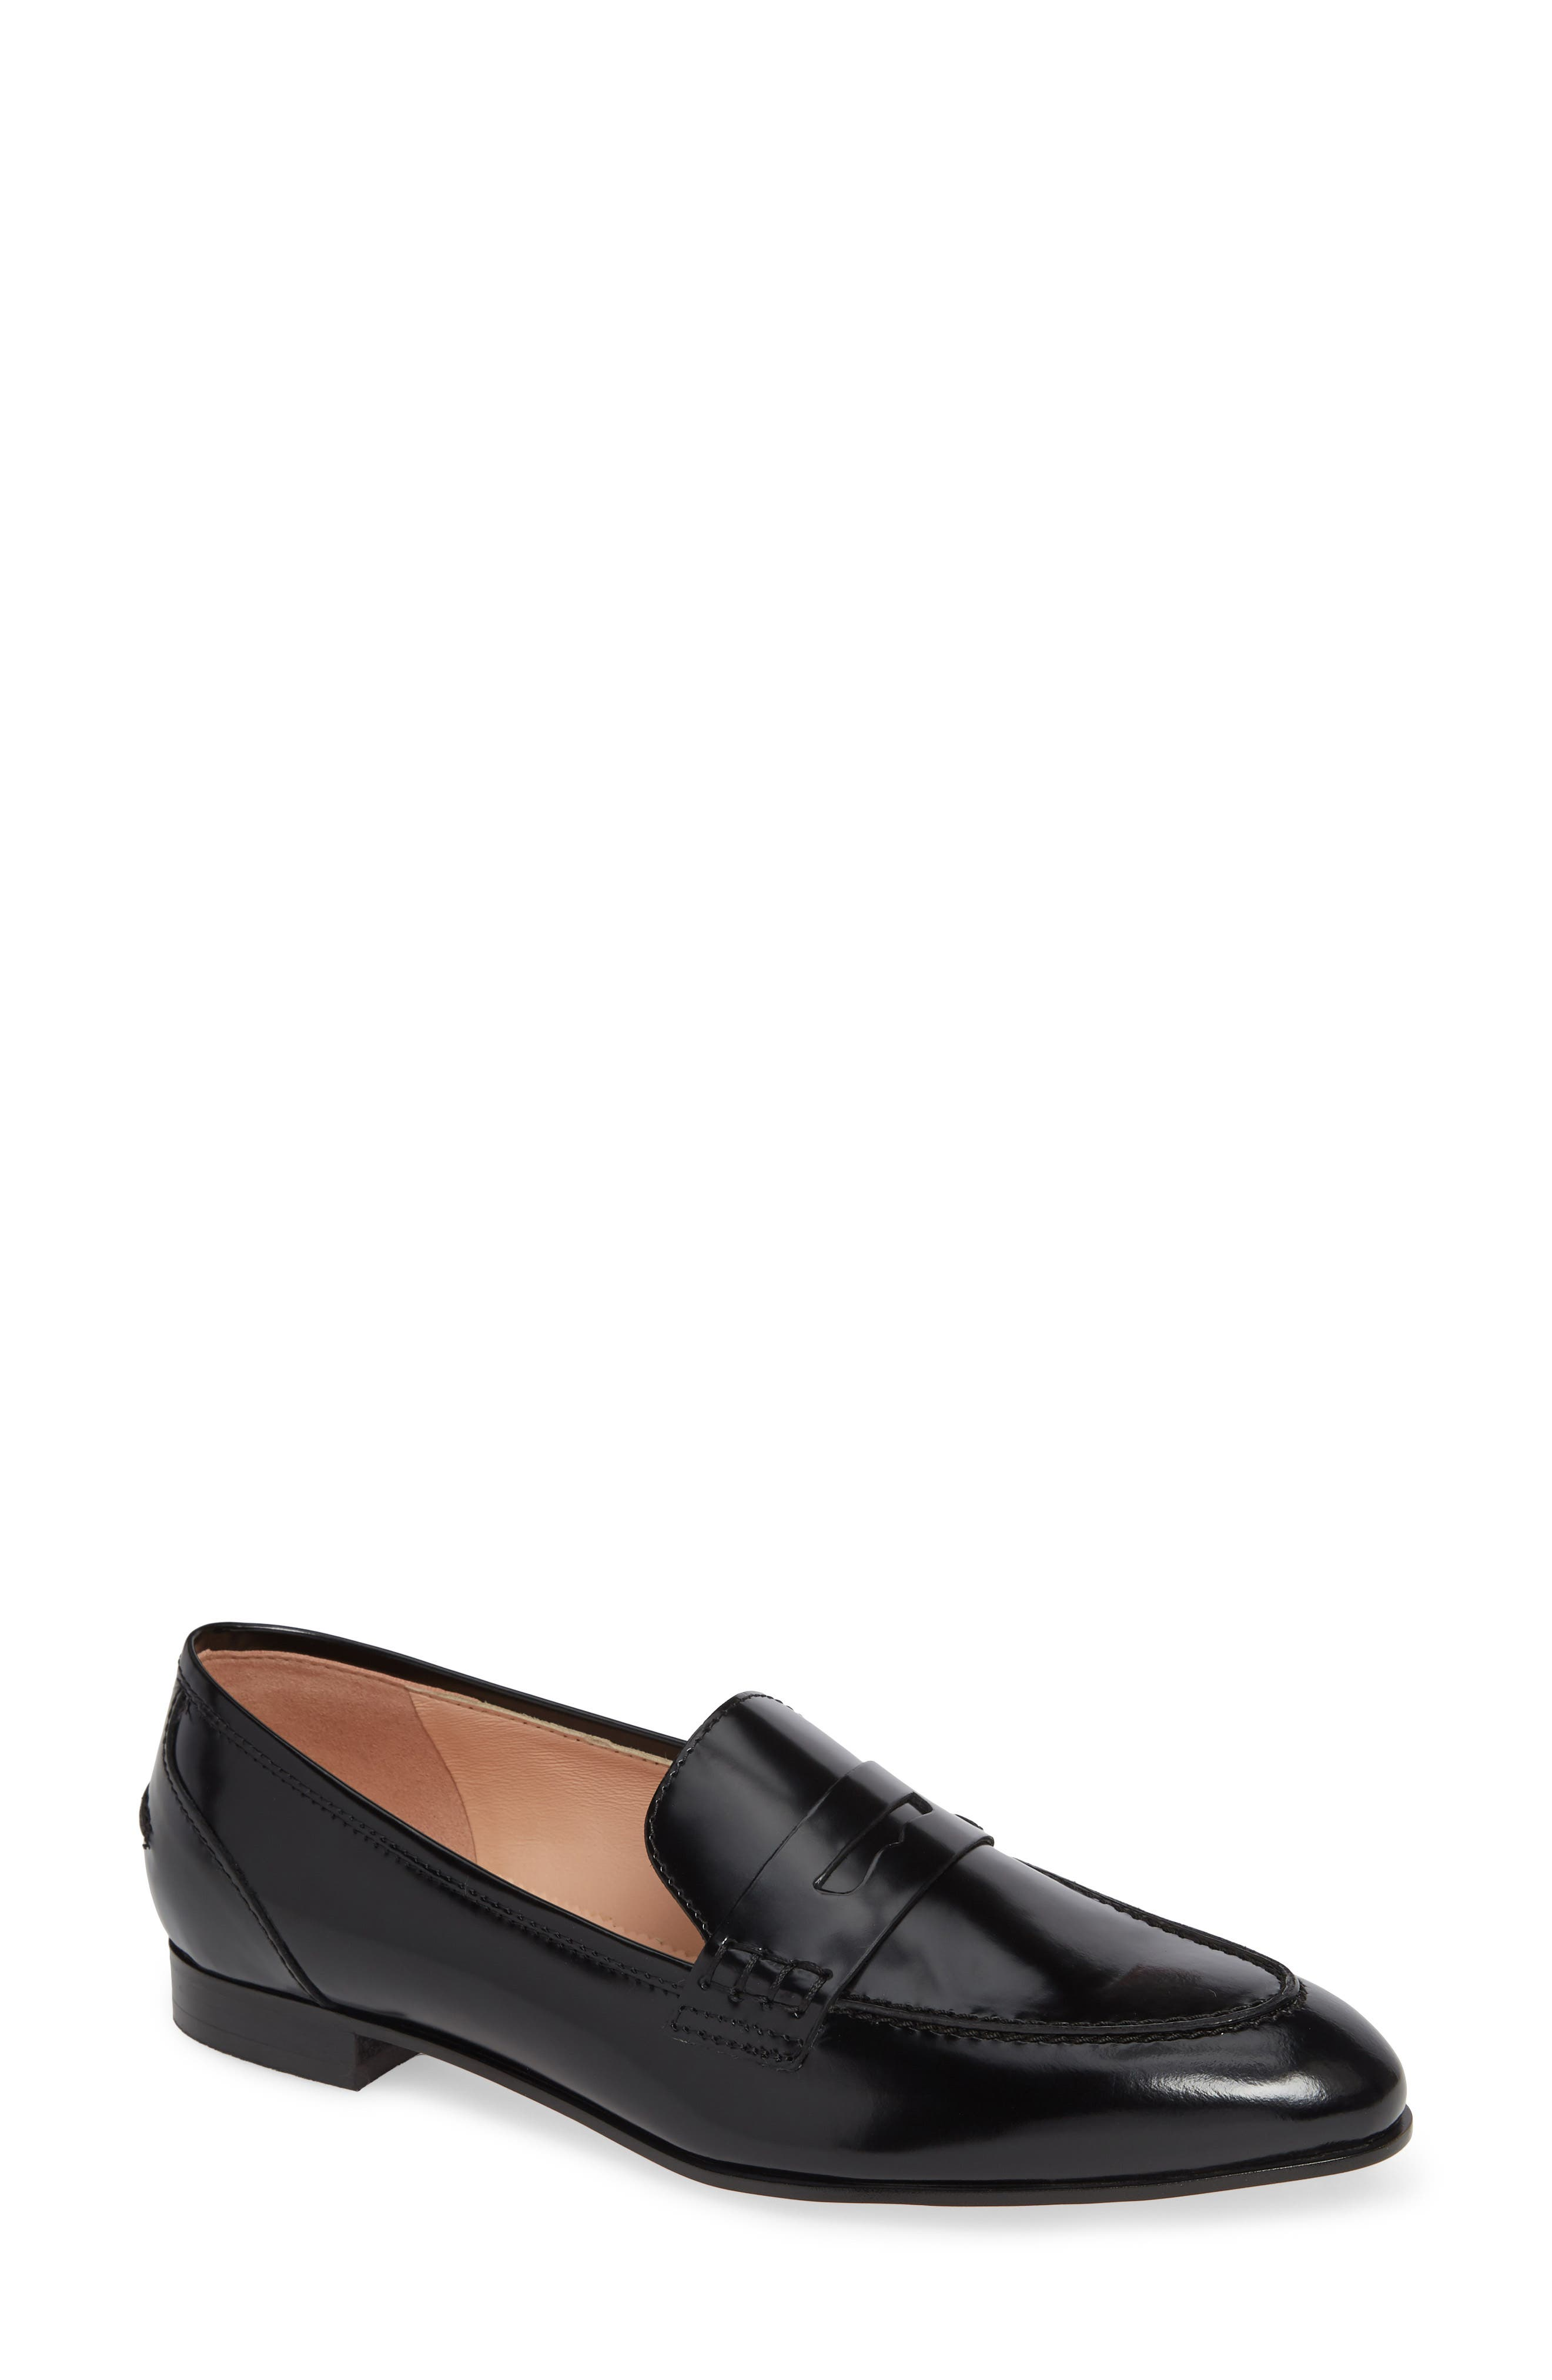 Academy Penny Loafer,                             Main thumbnail 1, color,                             BLACK LEATHER